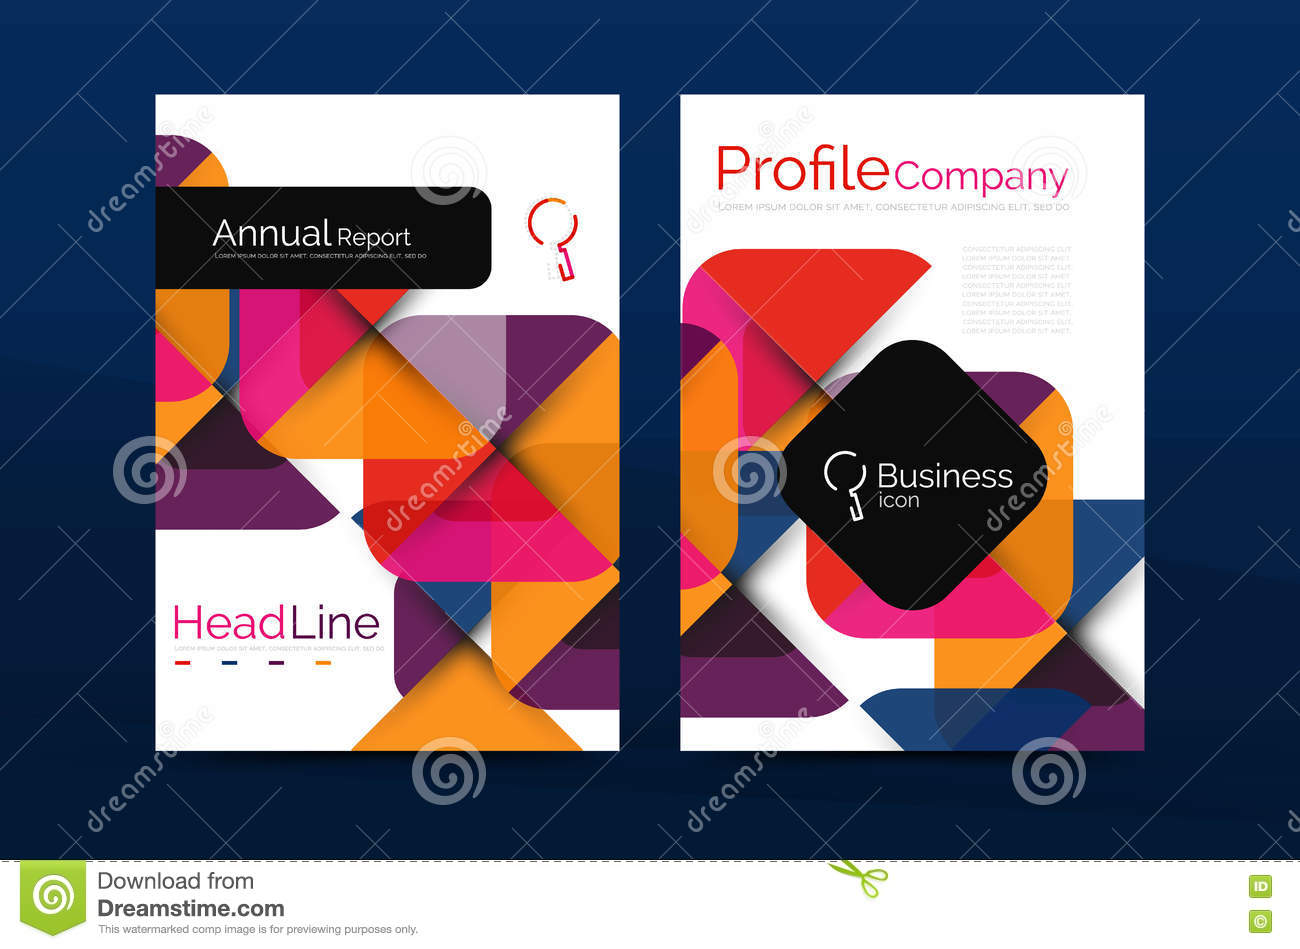 Download free company profile templates eczalinf download free company profile templates accmission Gallery